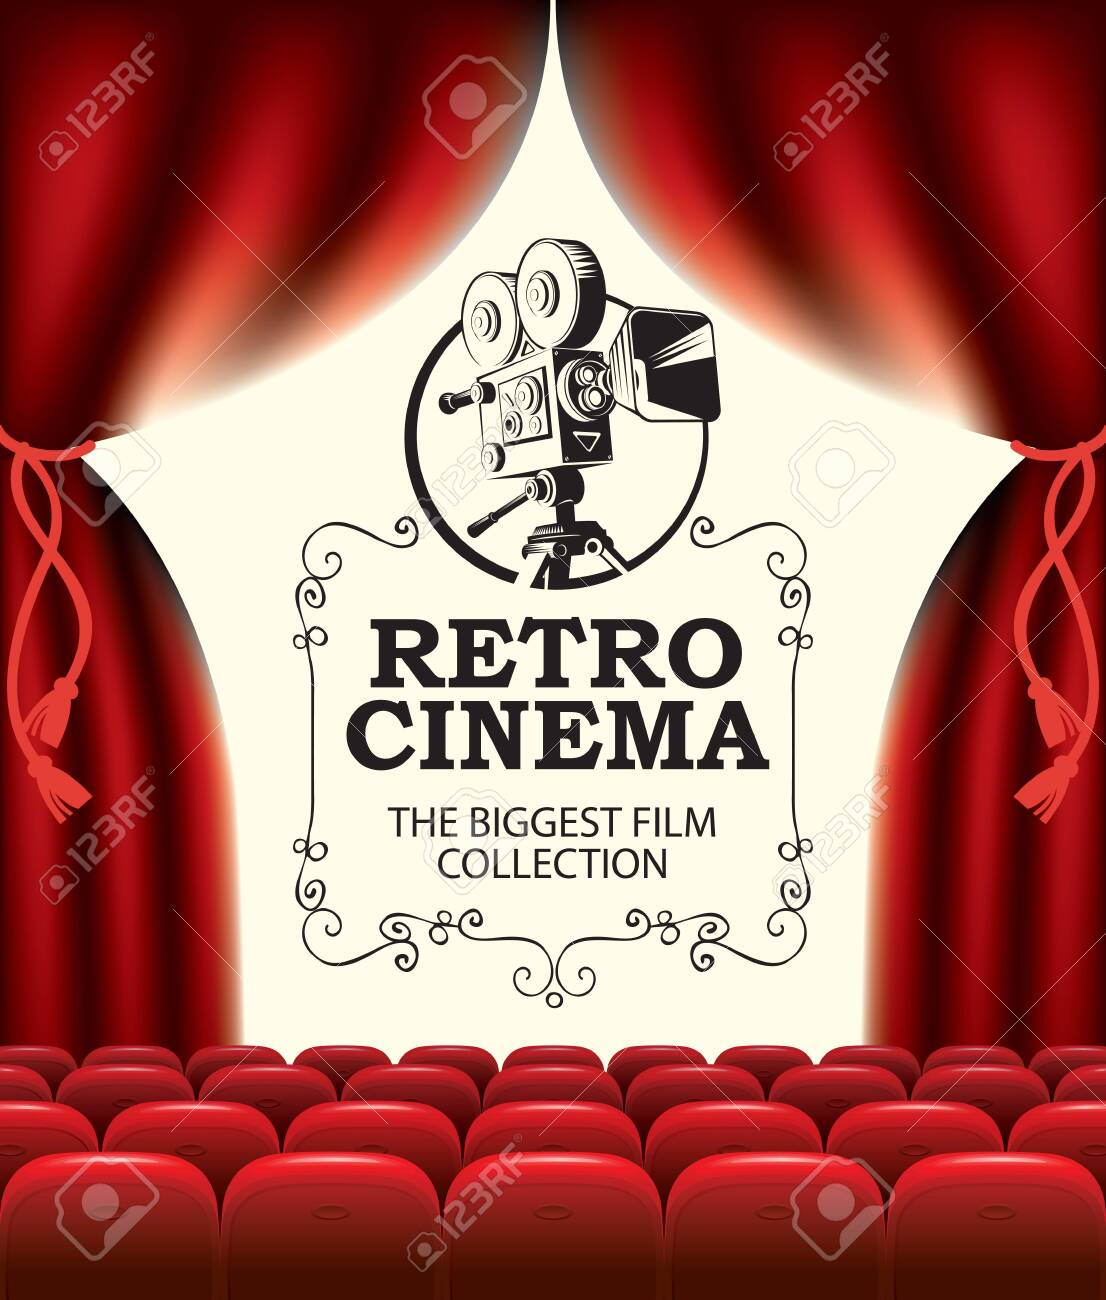 Vector Poster For Retro Cinema With An Old Movie Projector And Royalty Free Cliparts Vectors And Stock Illustration Image 141517207